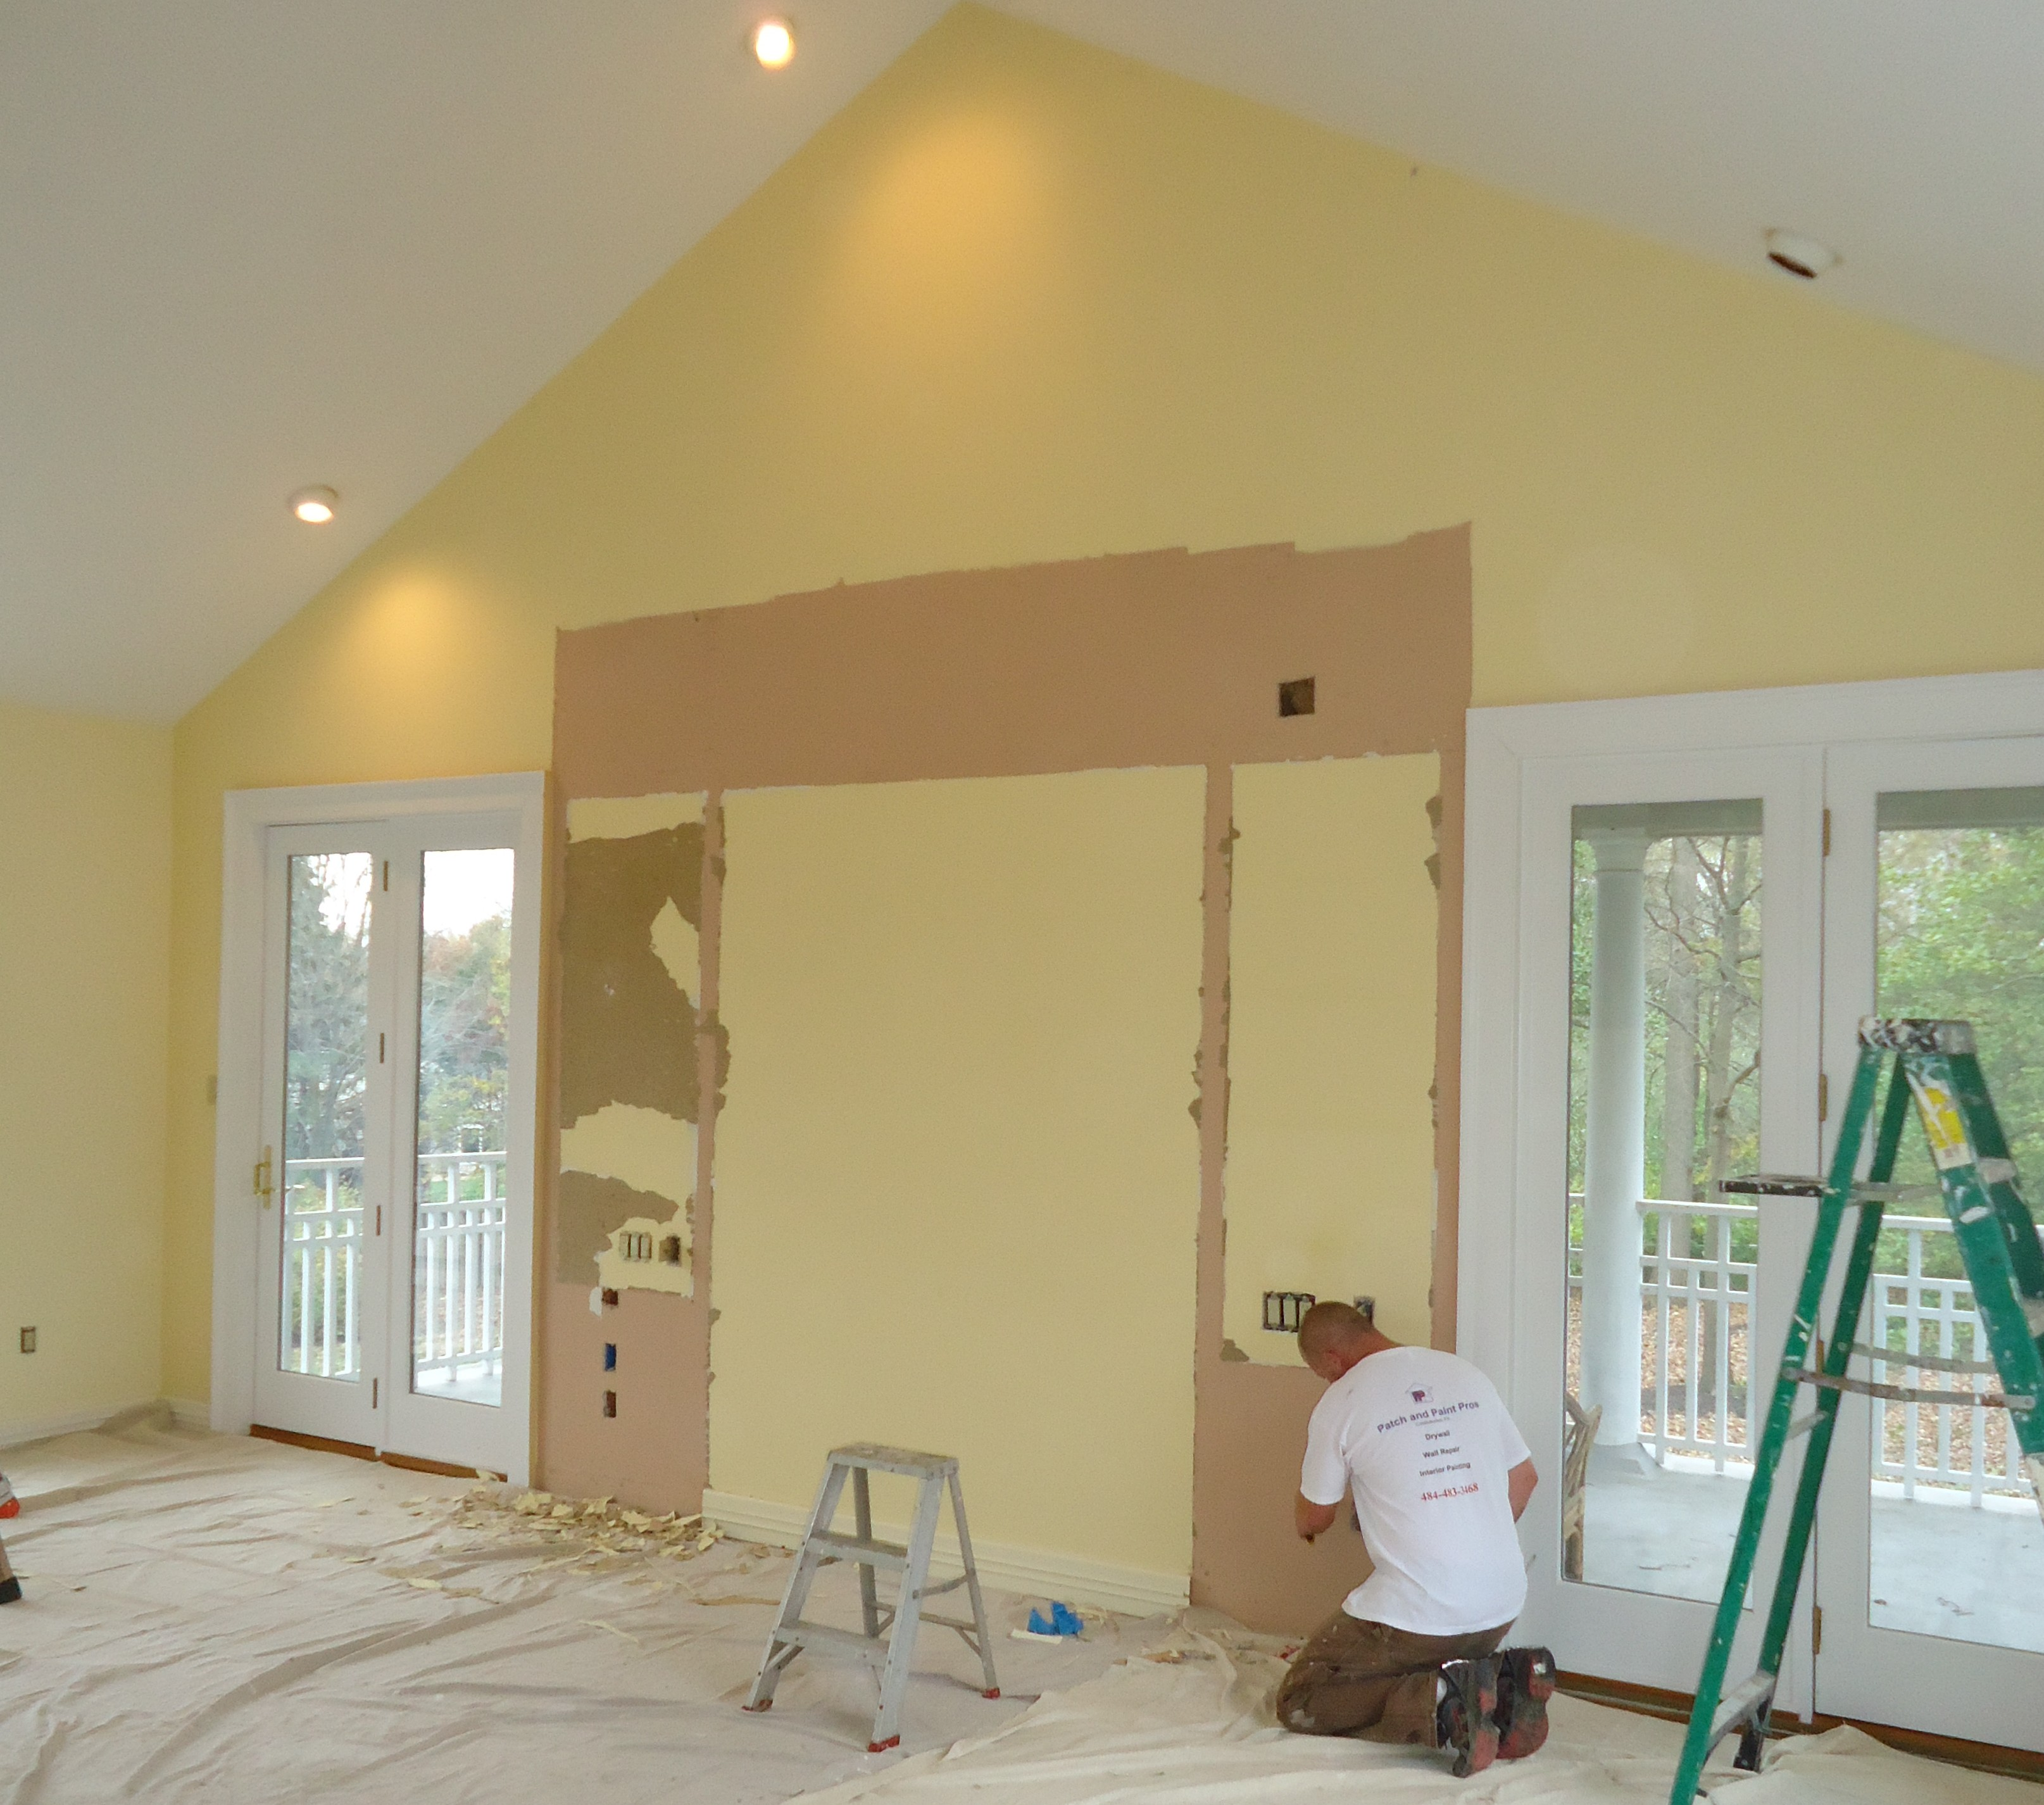 Interior House Painting   Ambler PA   Patch and Paint Pros Interior House Painting  Ambler Photos